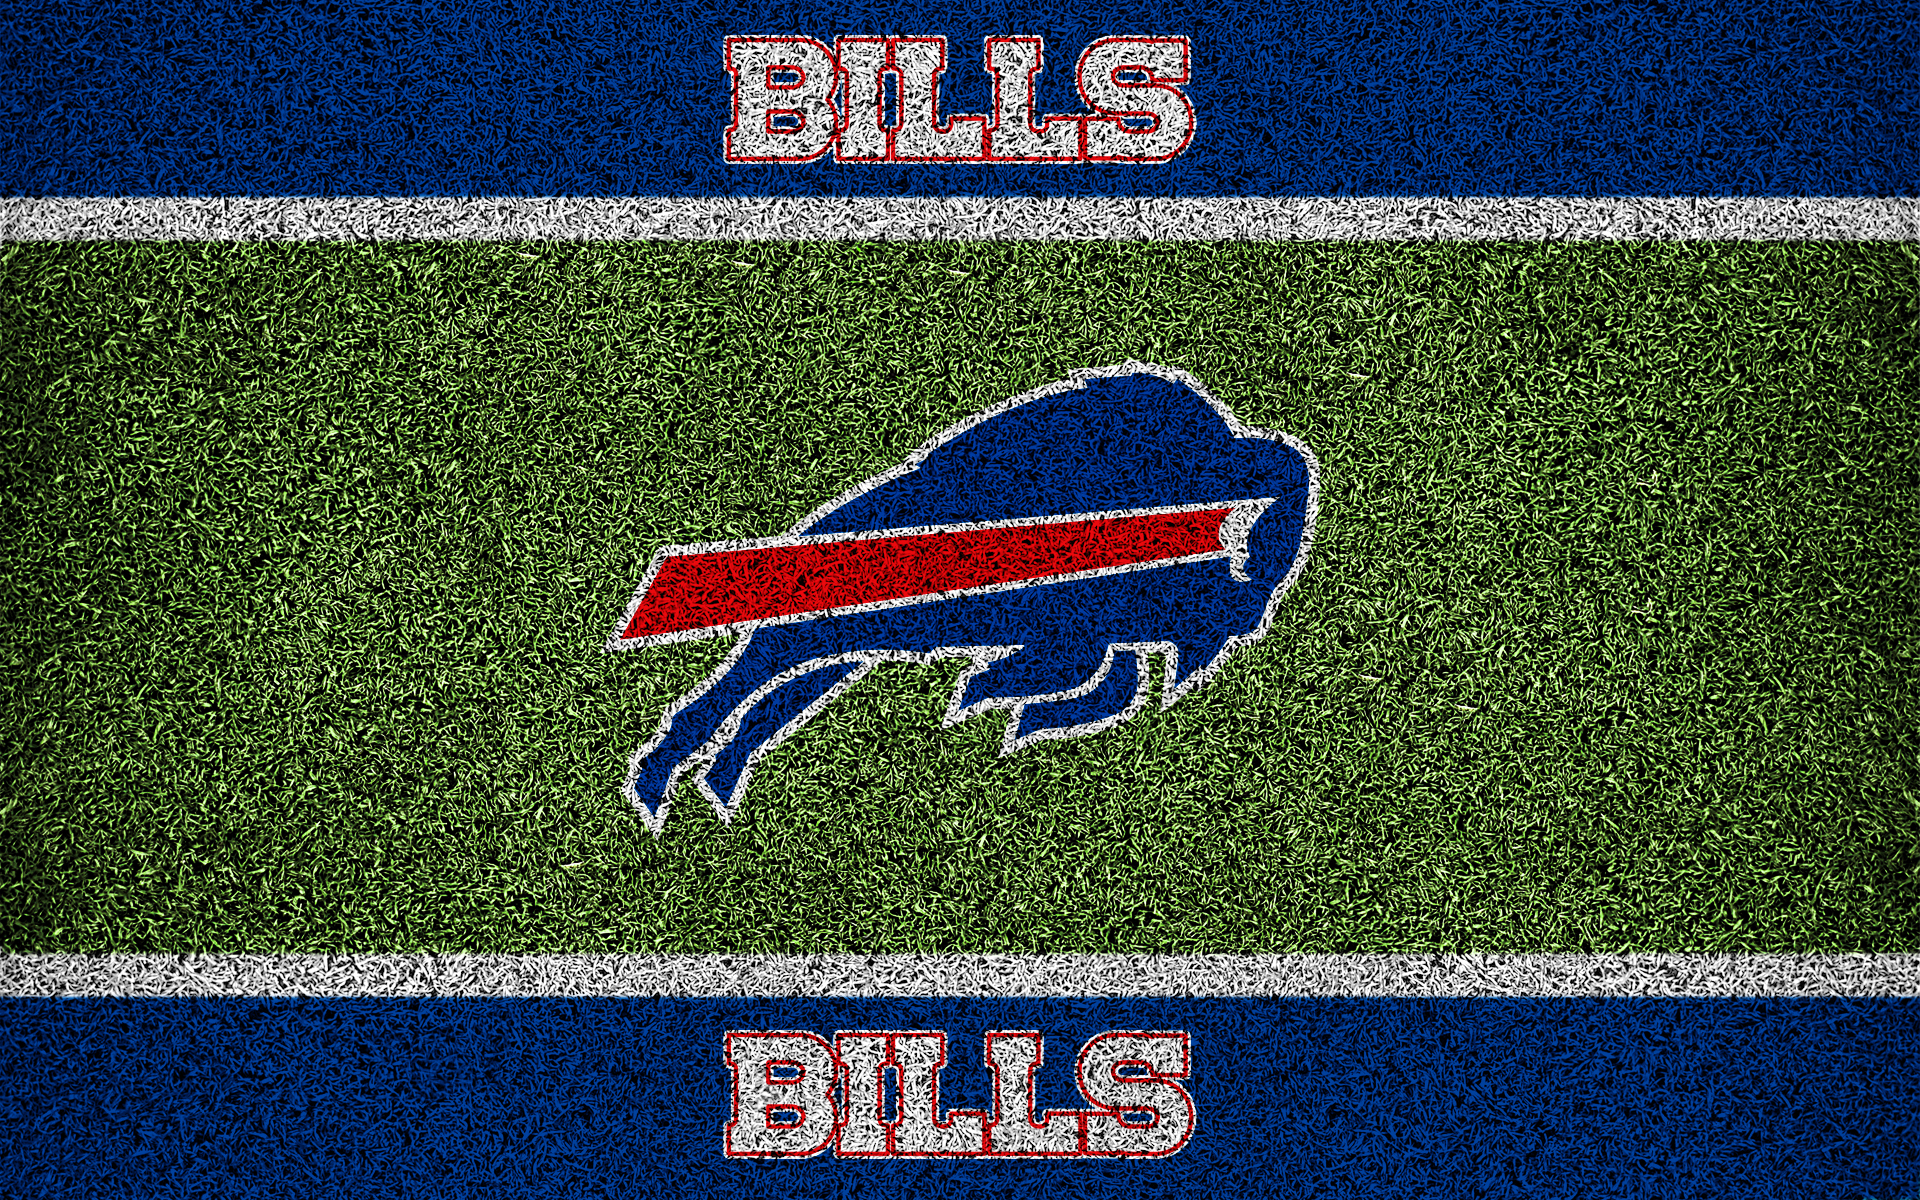 Nice Buffalo Bills wallpaper Buffalo Bills wallpapers 1920x1200